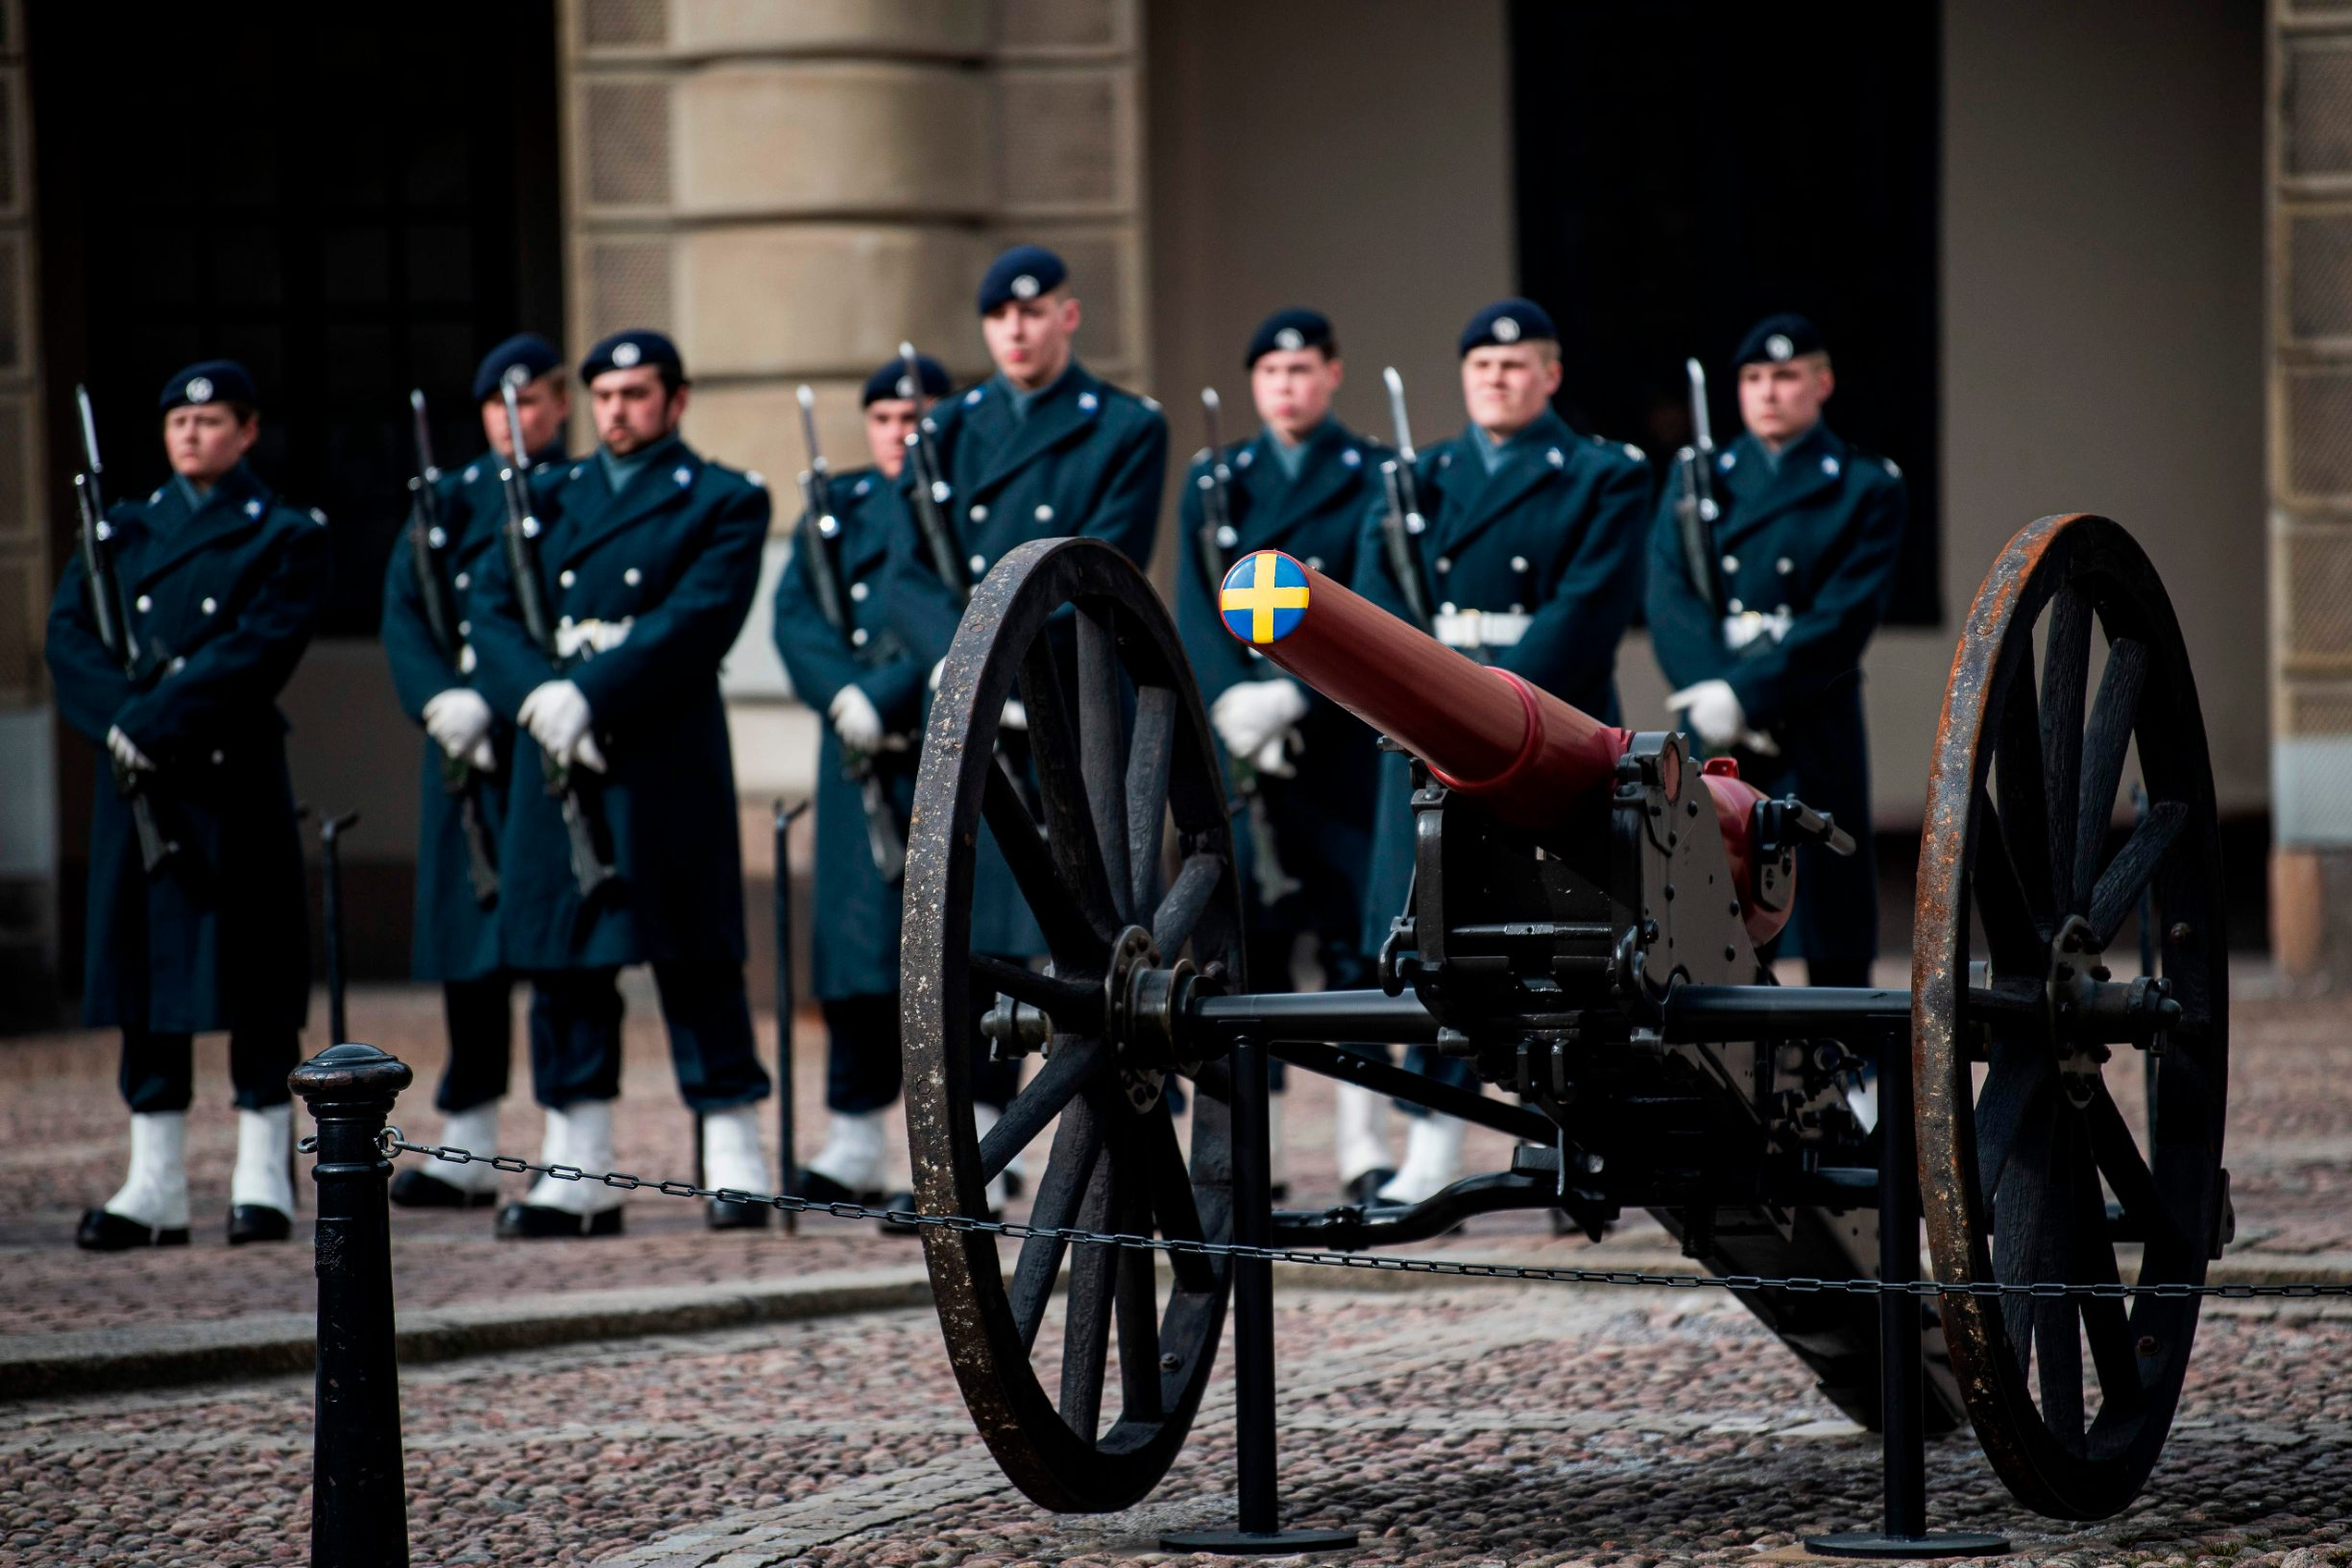 Soldiers of the royal guard change shifts at the royal palace in Stockholm, Sweden, while the rest of Europe is in lockdown in a bid to curb the spread of the new coronavirus COVID-19, on March 25, 2020. - While most of Europe is firmly locked down in a bid to curb the spread of COVID-19, Sweden is taking a softer line, keeping primary schools, restaurants and bars open and even encouraging people to go outside for a nip of air. This stands in stark contrast to the urgent tone elsewhere and has sparked heated debate whether Sweden is really doing the right thing. (Photo by Jonathan NACKSTRAND / AFP)